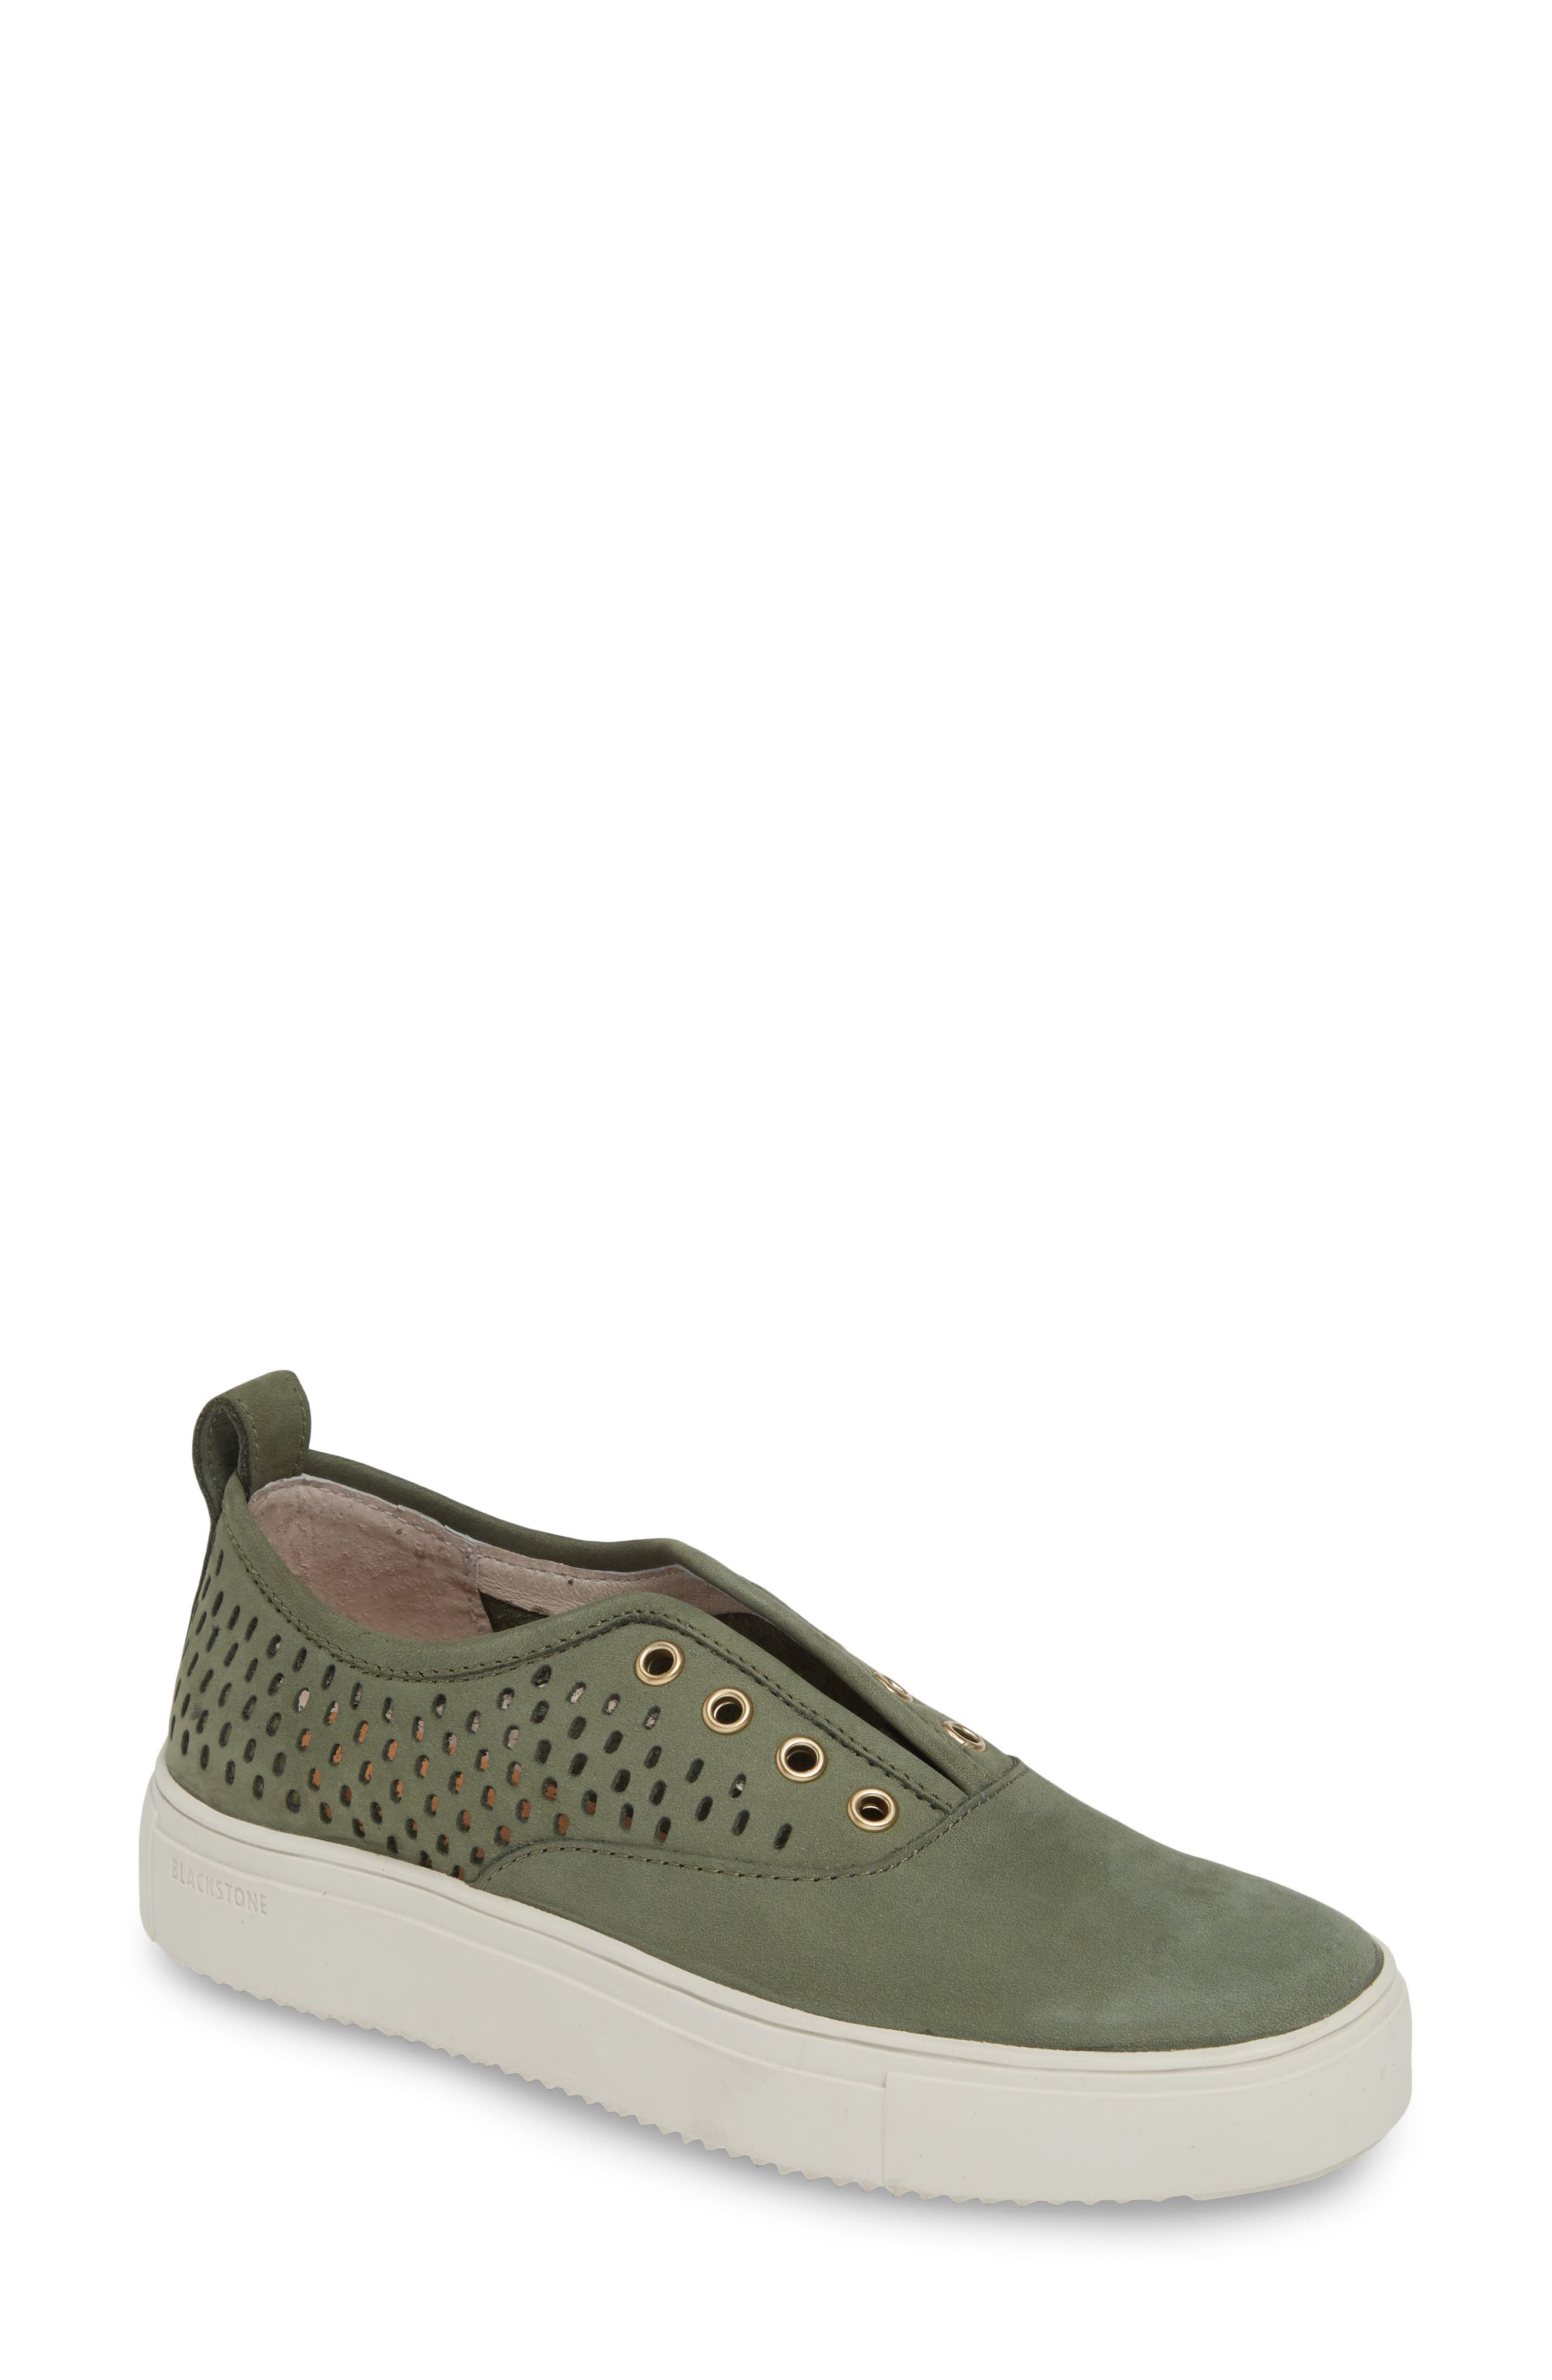 Rl67 Laceless Perforated Sneaker